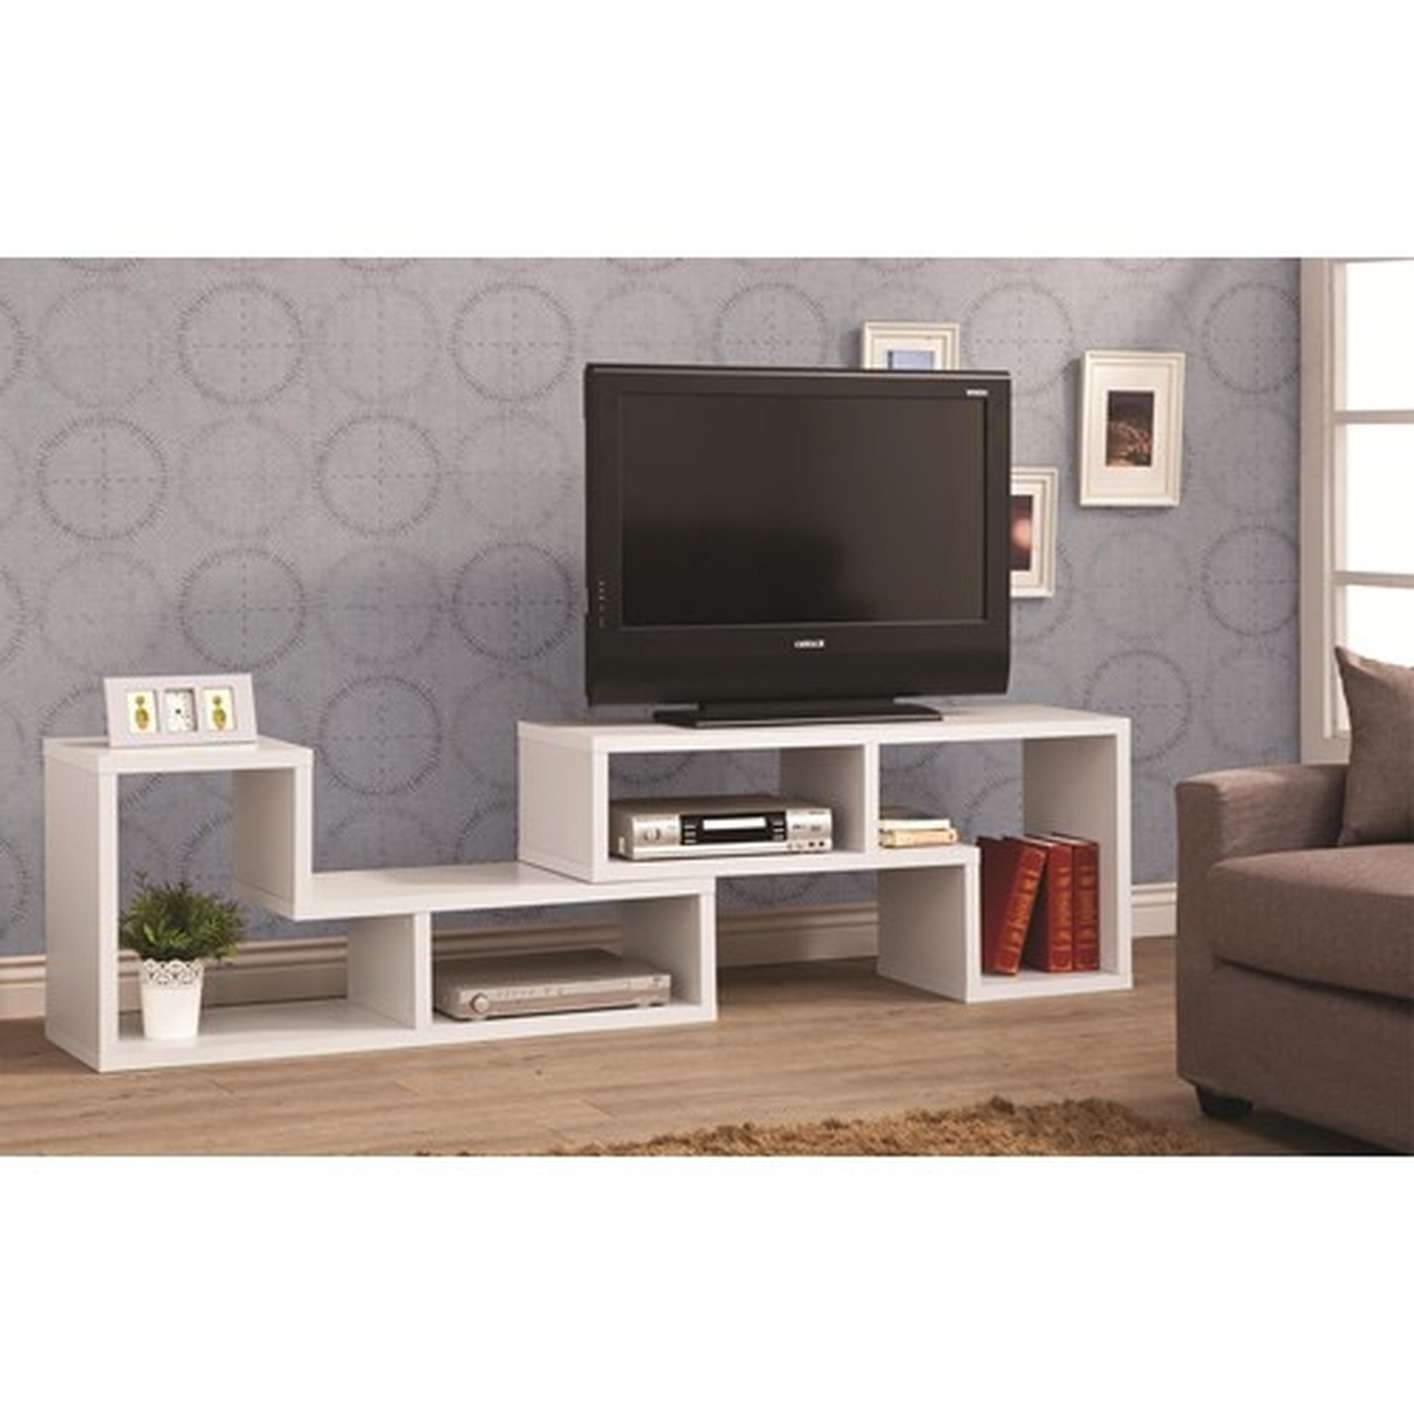 White Wood Tv Stand – Steal A Sofa Furniture Outlet Los Angeles Ca Inside White Wooden Tv Stands (View 16 of 20)